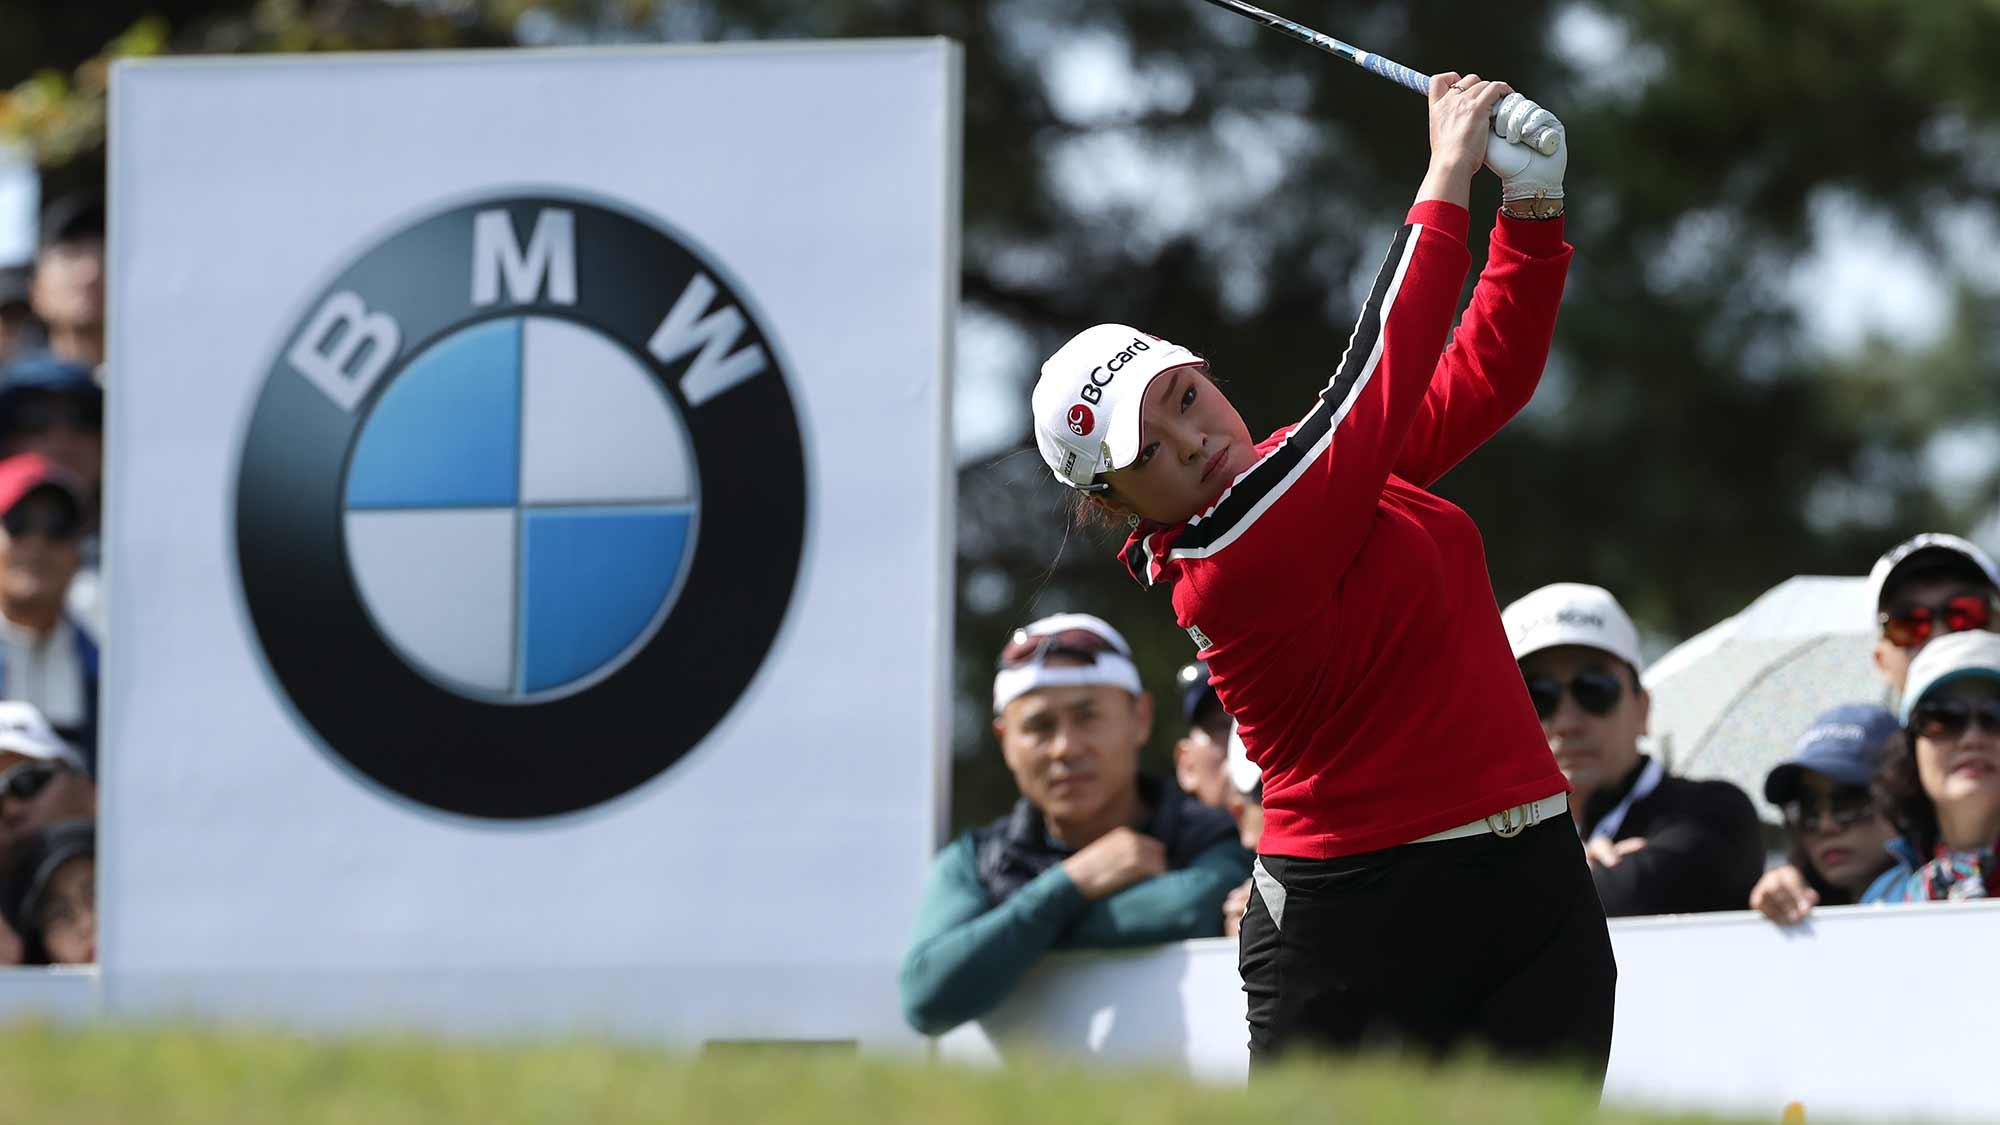 Ha Na Jang of Republic of Korea drives from a tee on the fifth hole during the final Round of 2019 BMW Ladies Championship at LPGA International Busan on October 27, 2019 in Busan, Republic of Korea